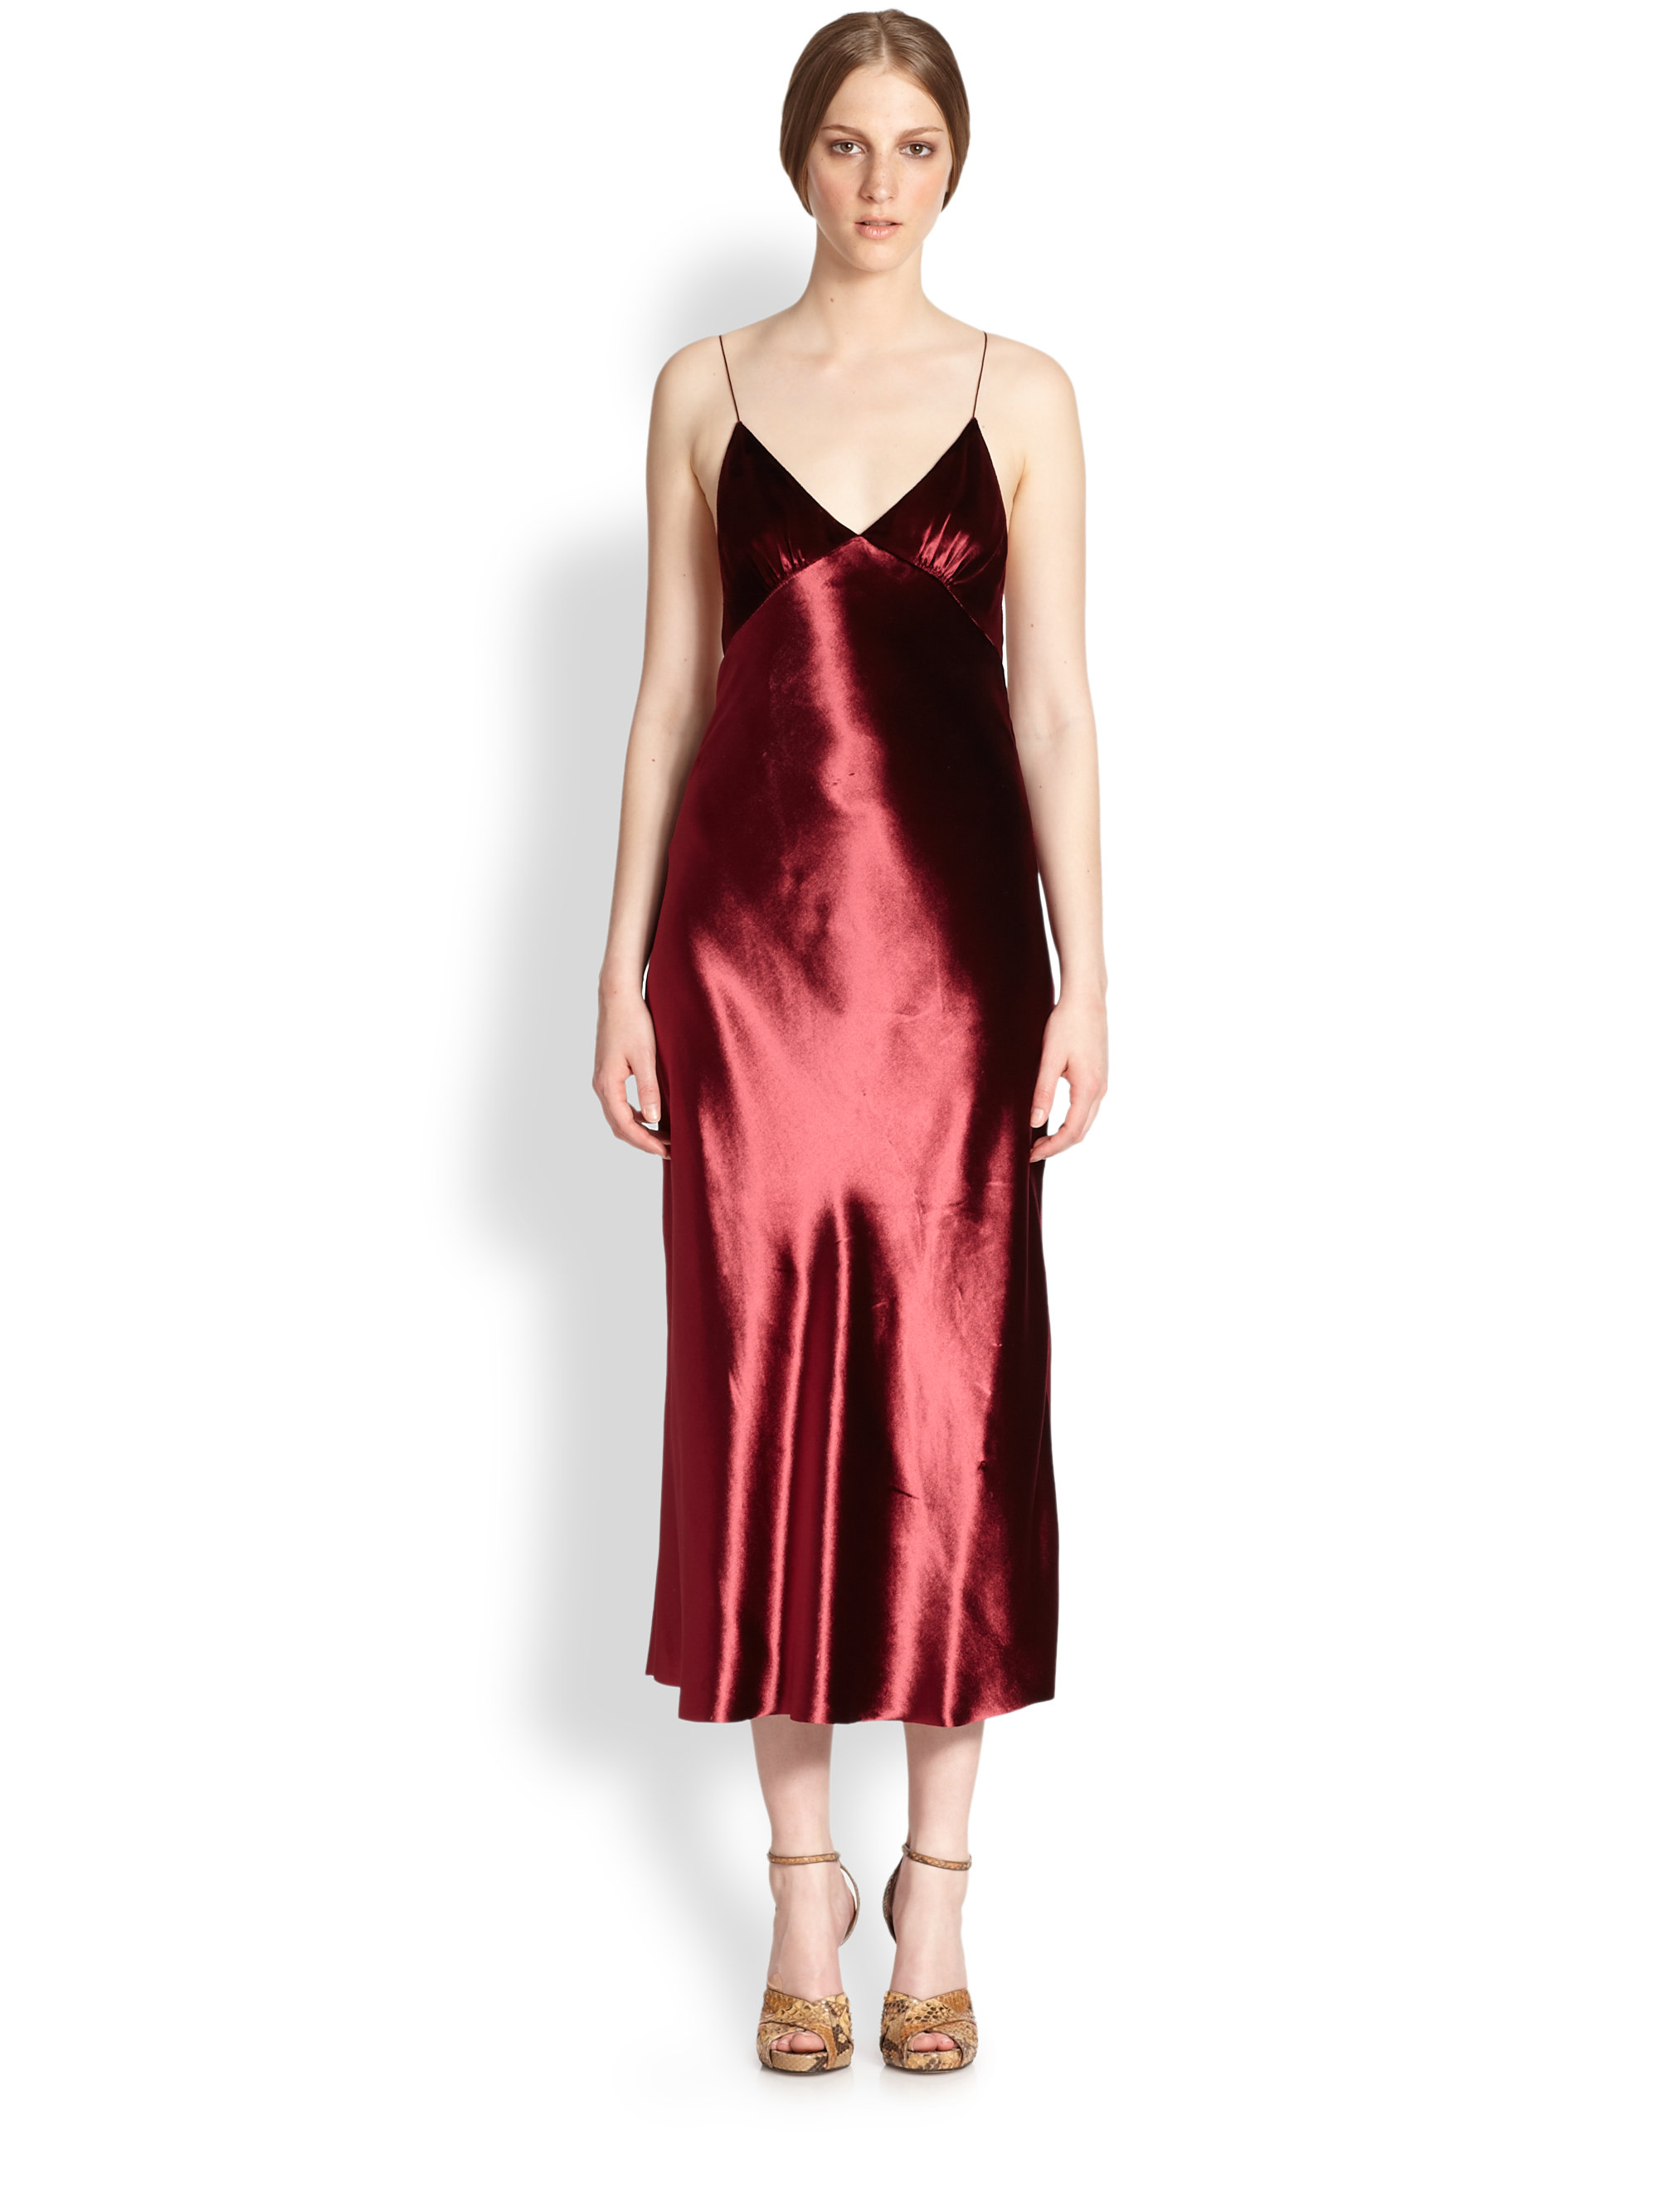 726c7bb0a1a1 Marc Jacobs Panne Velvet Dress in Red - Lyst